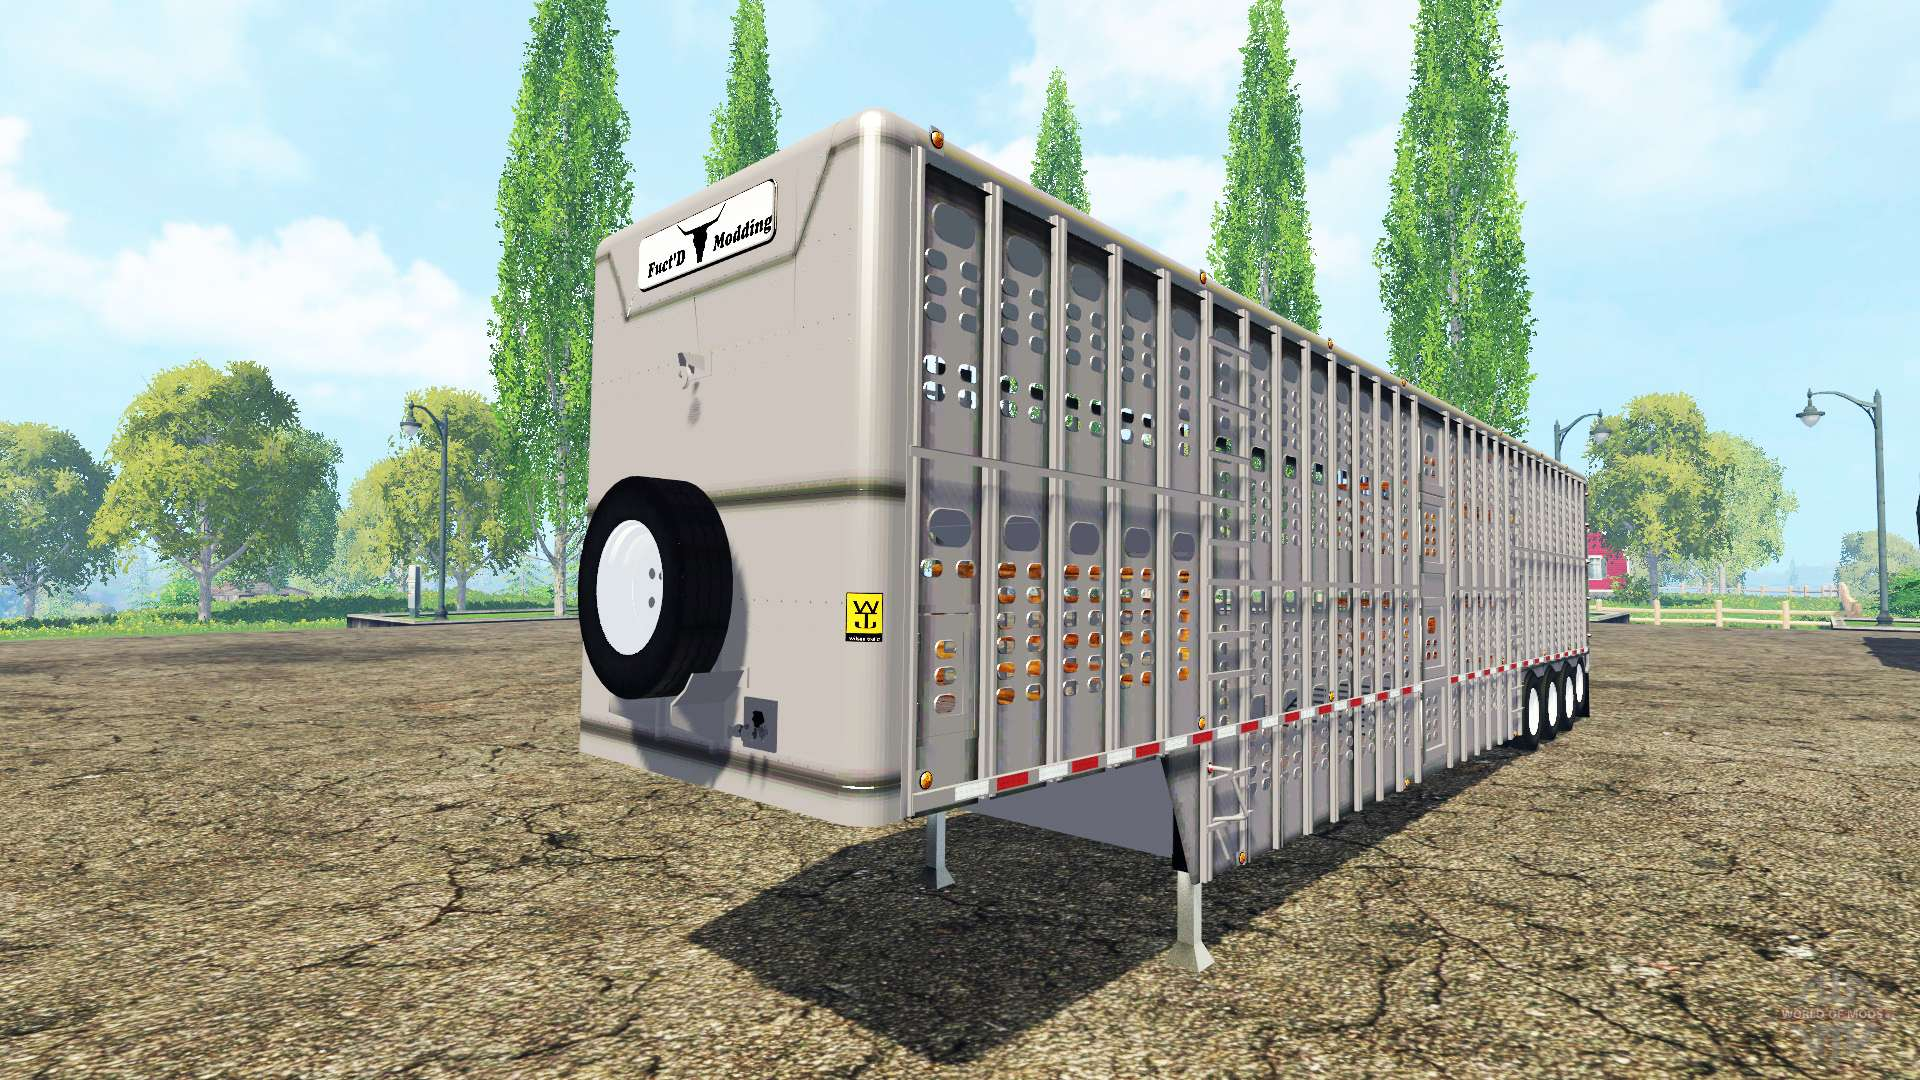 Farming simulator 2015 trailer 4 / Marguerite volant trailer